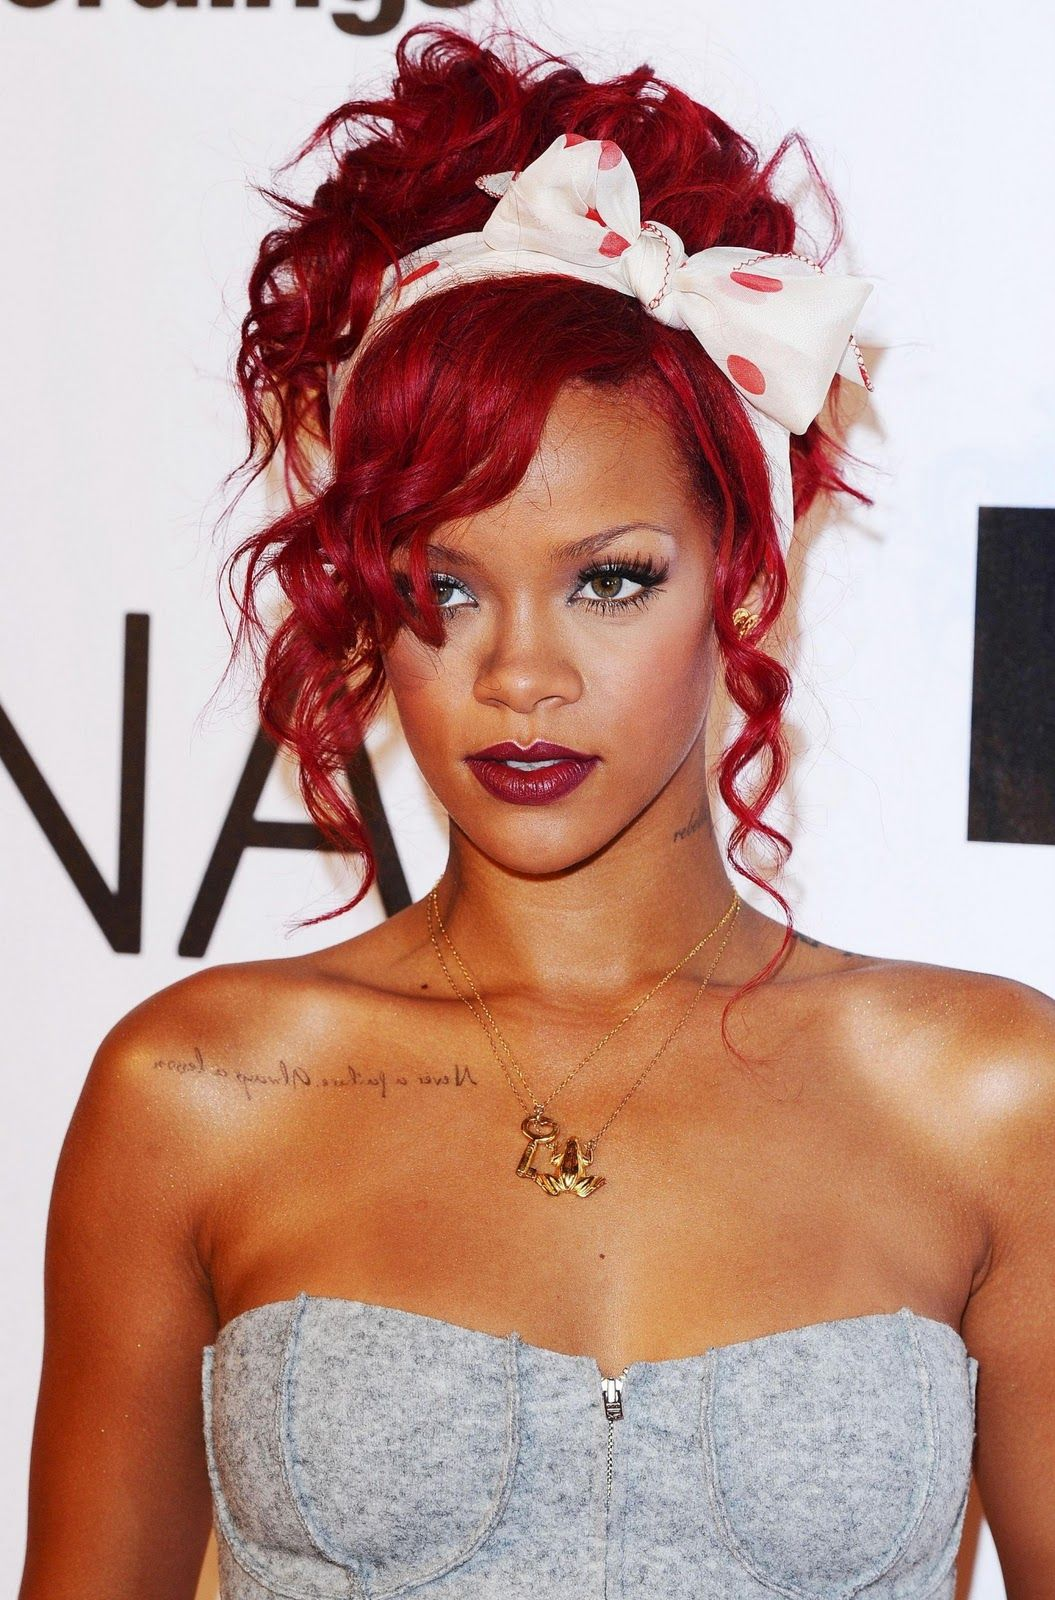 Singer-songwriter Rihanna Fenty looks fabulous with her ... - photo#40